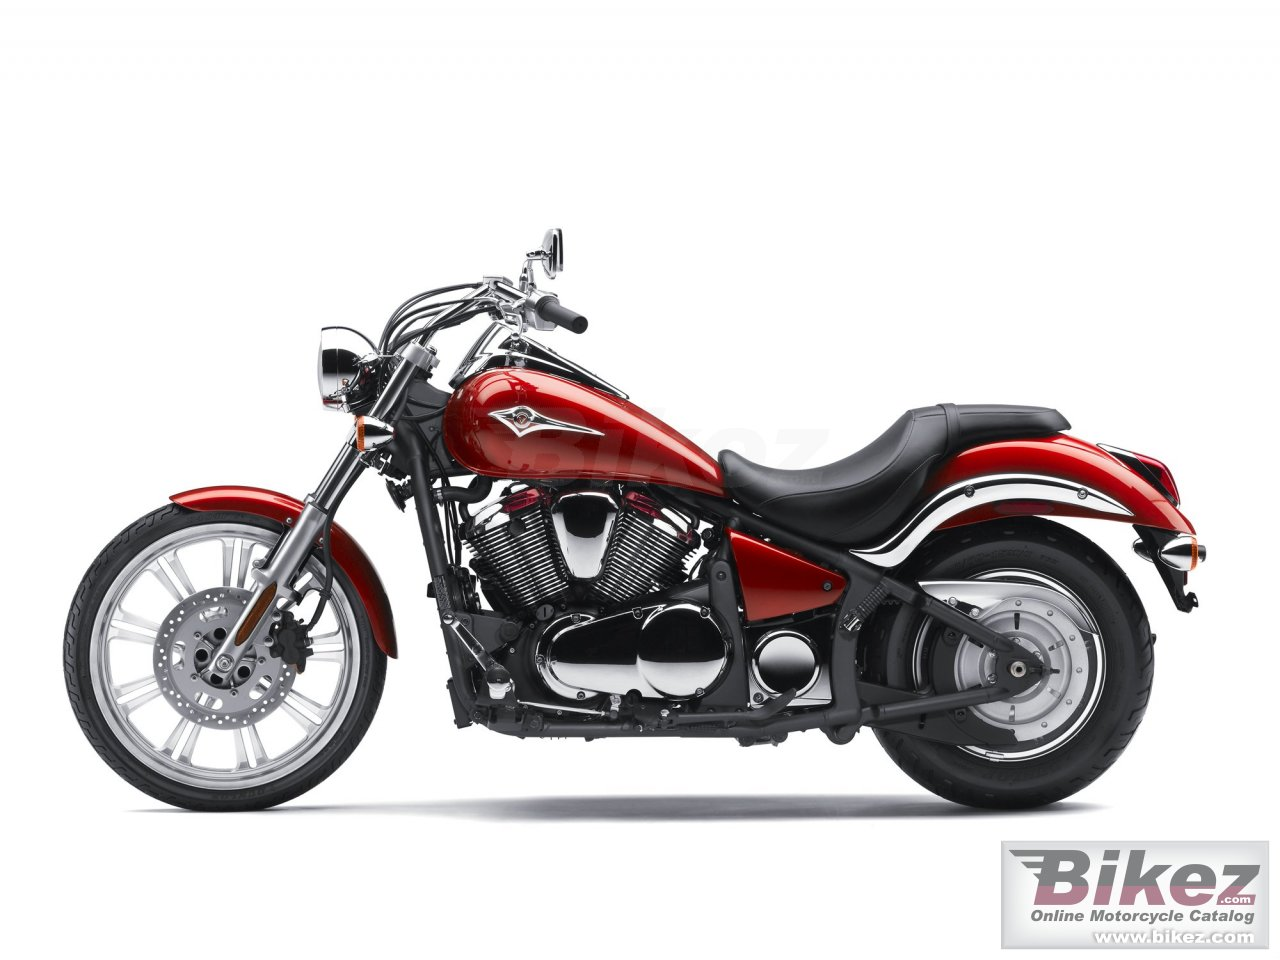 Big Kawasaki vulcan 900 custom picture and wallpaper from Bikez.com